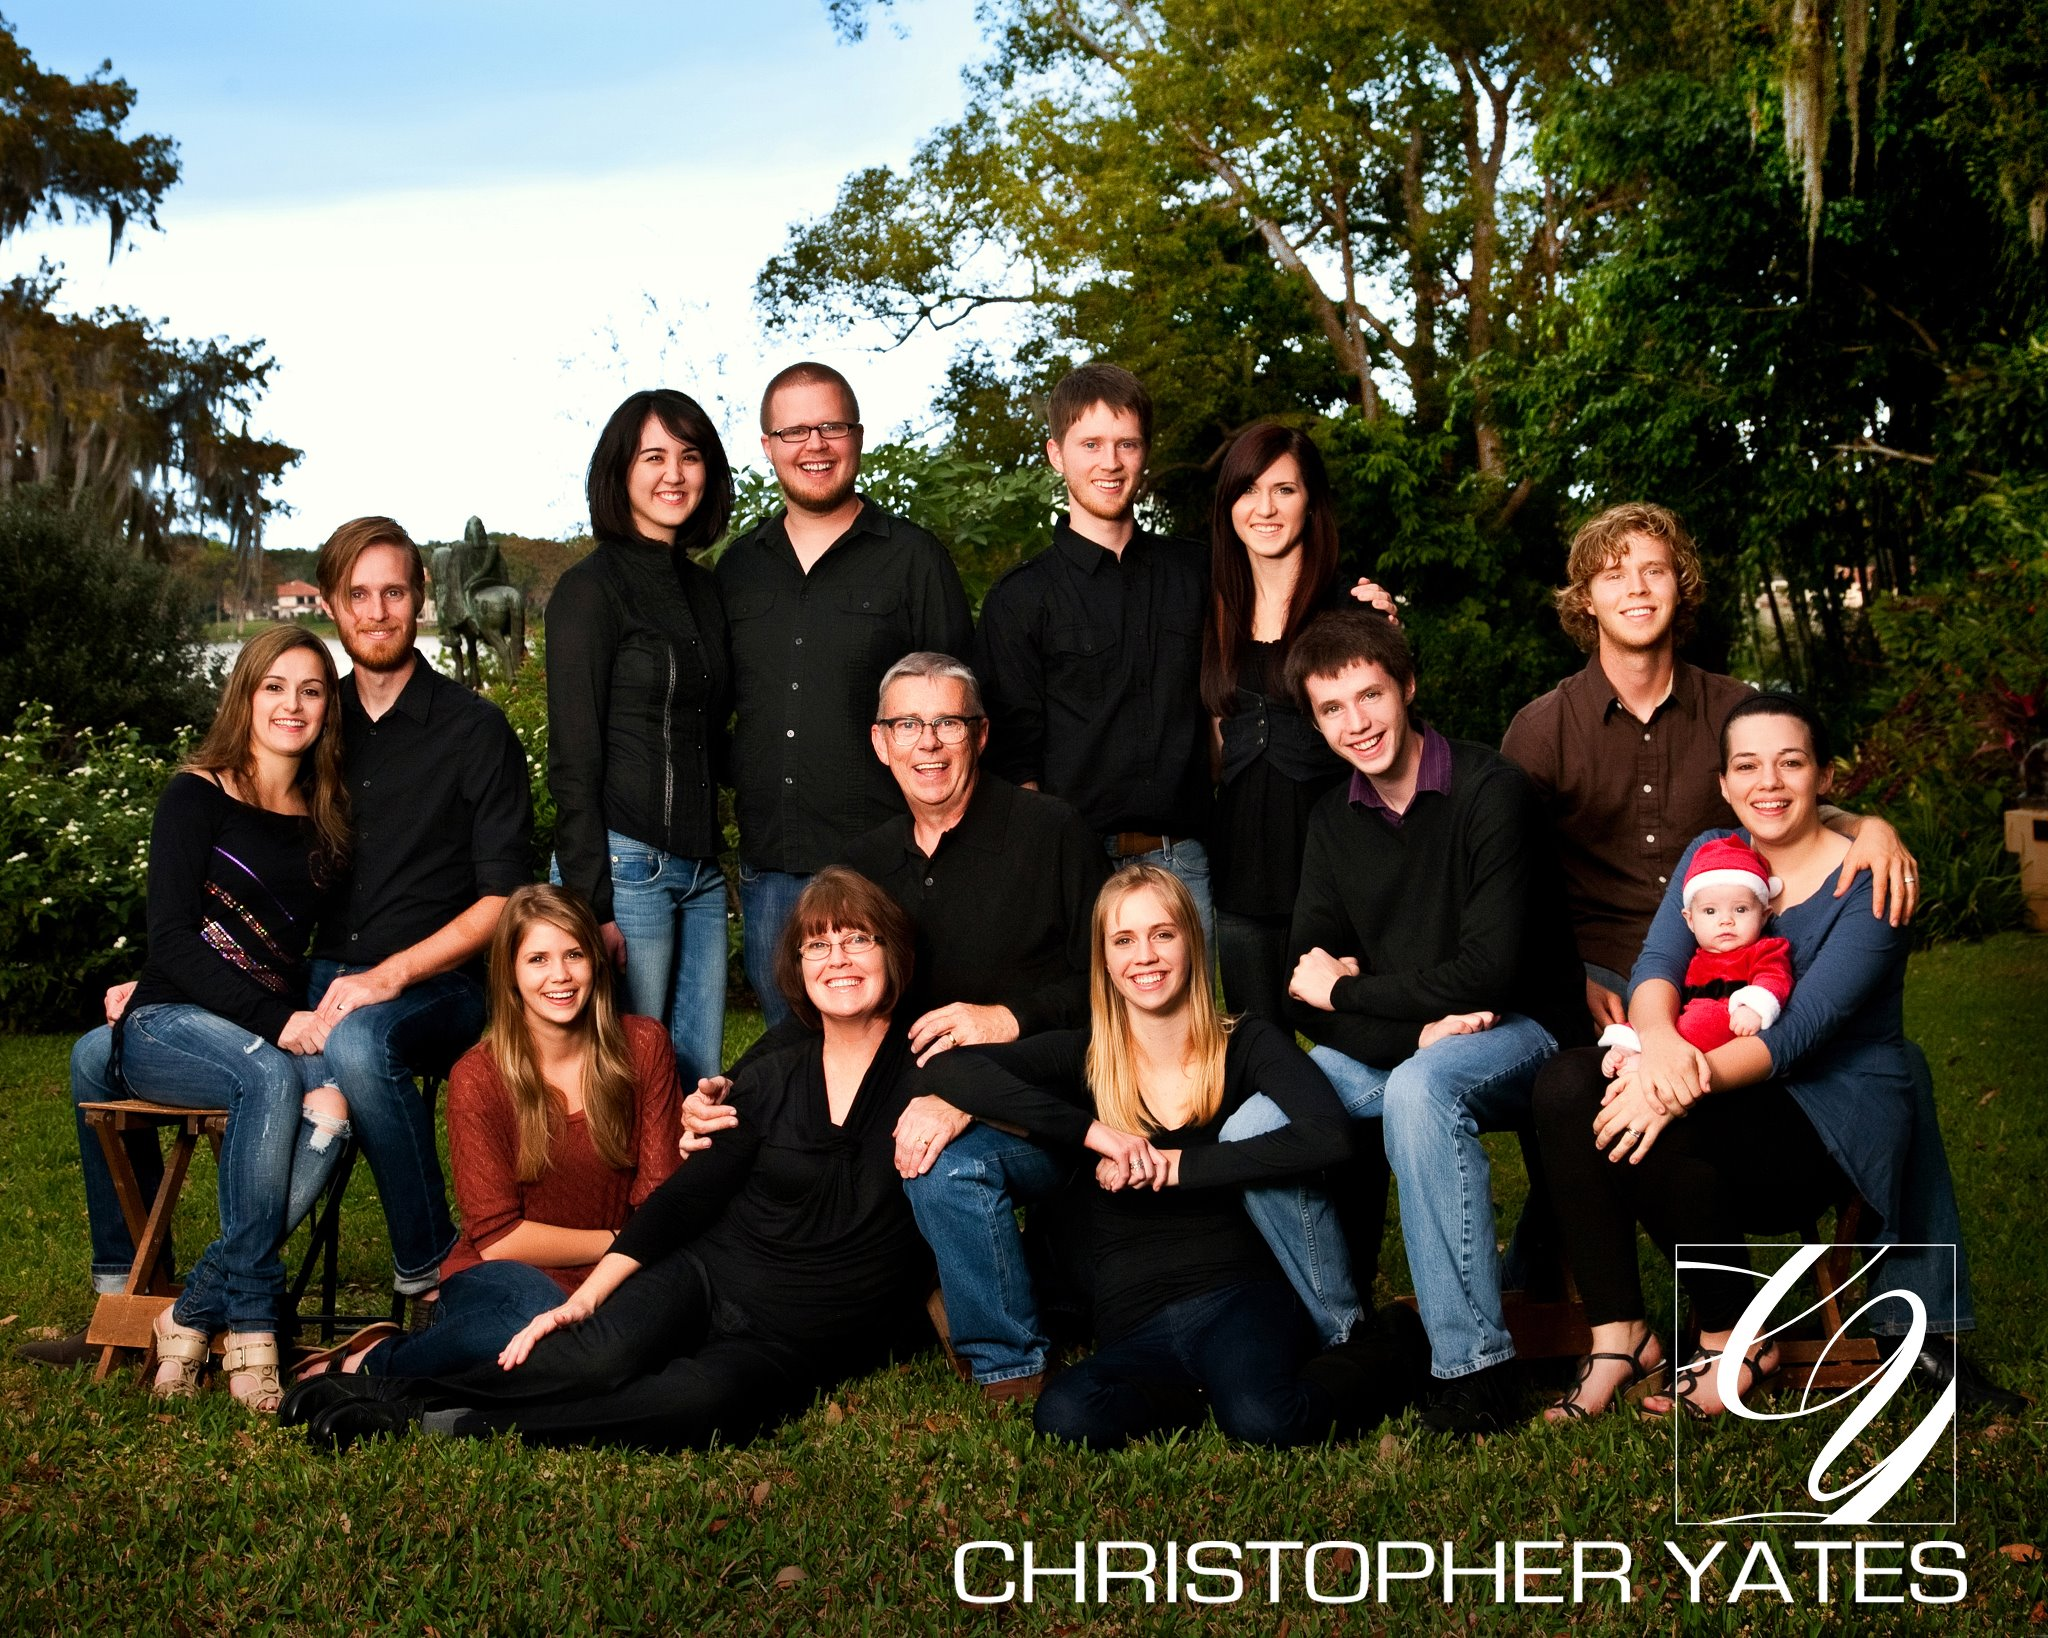 should hire professional photographer family portraits